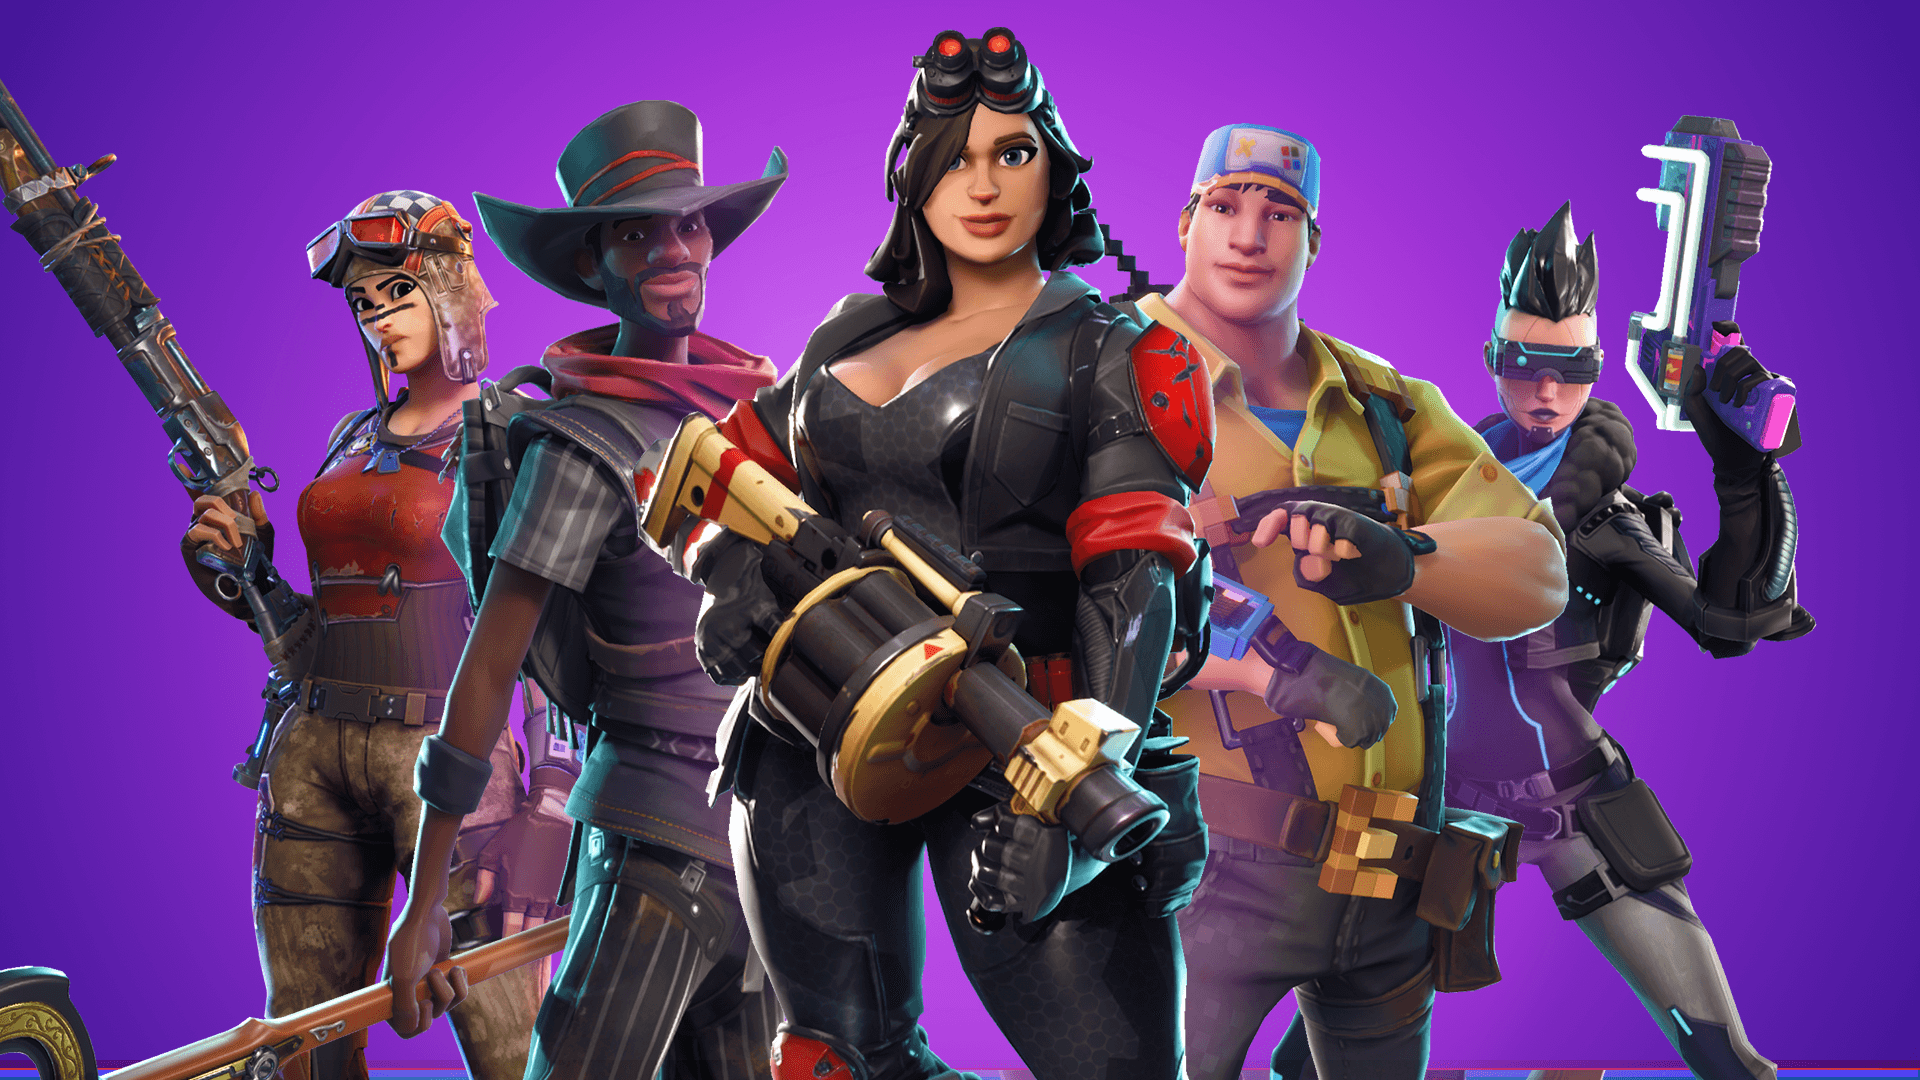 Fortnite cosmetics can be purchased at the official store. (Image: Epic Games)